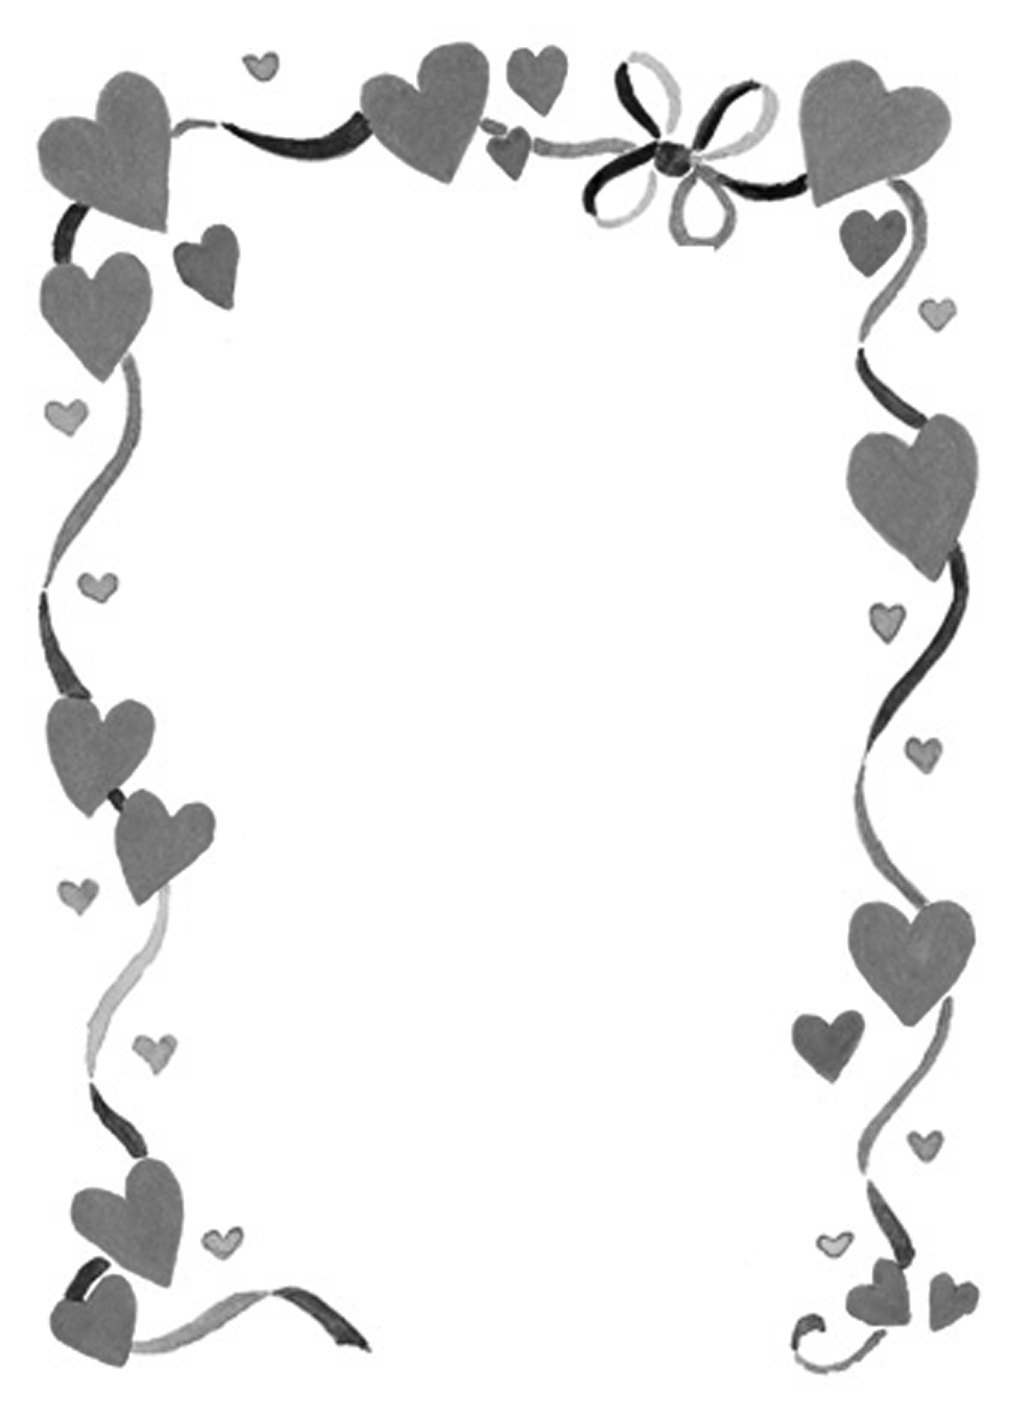 Wedding cliparts free download clip freeuse download Wedding clipart borders free download - ClipartFest clip freeuse download